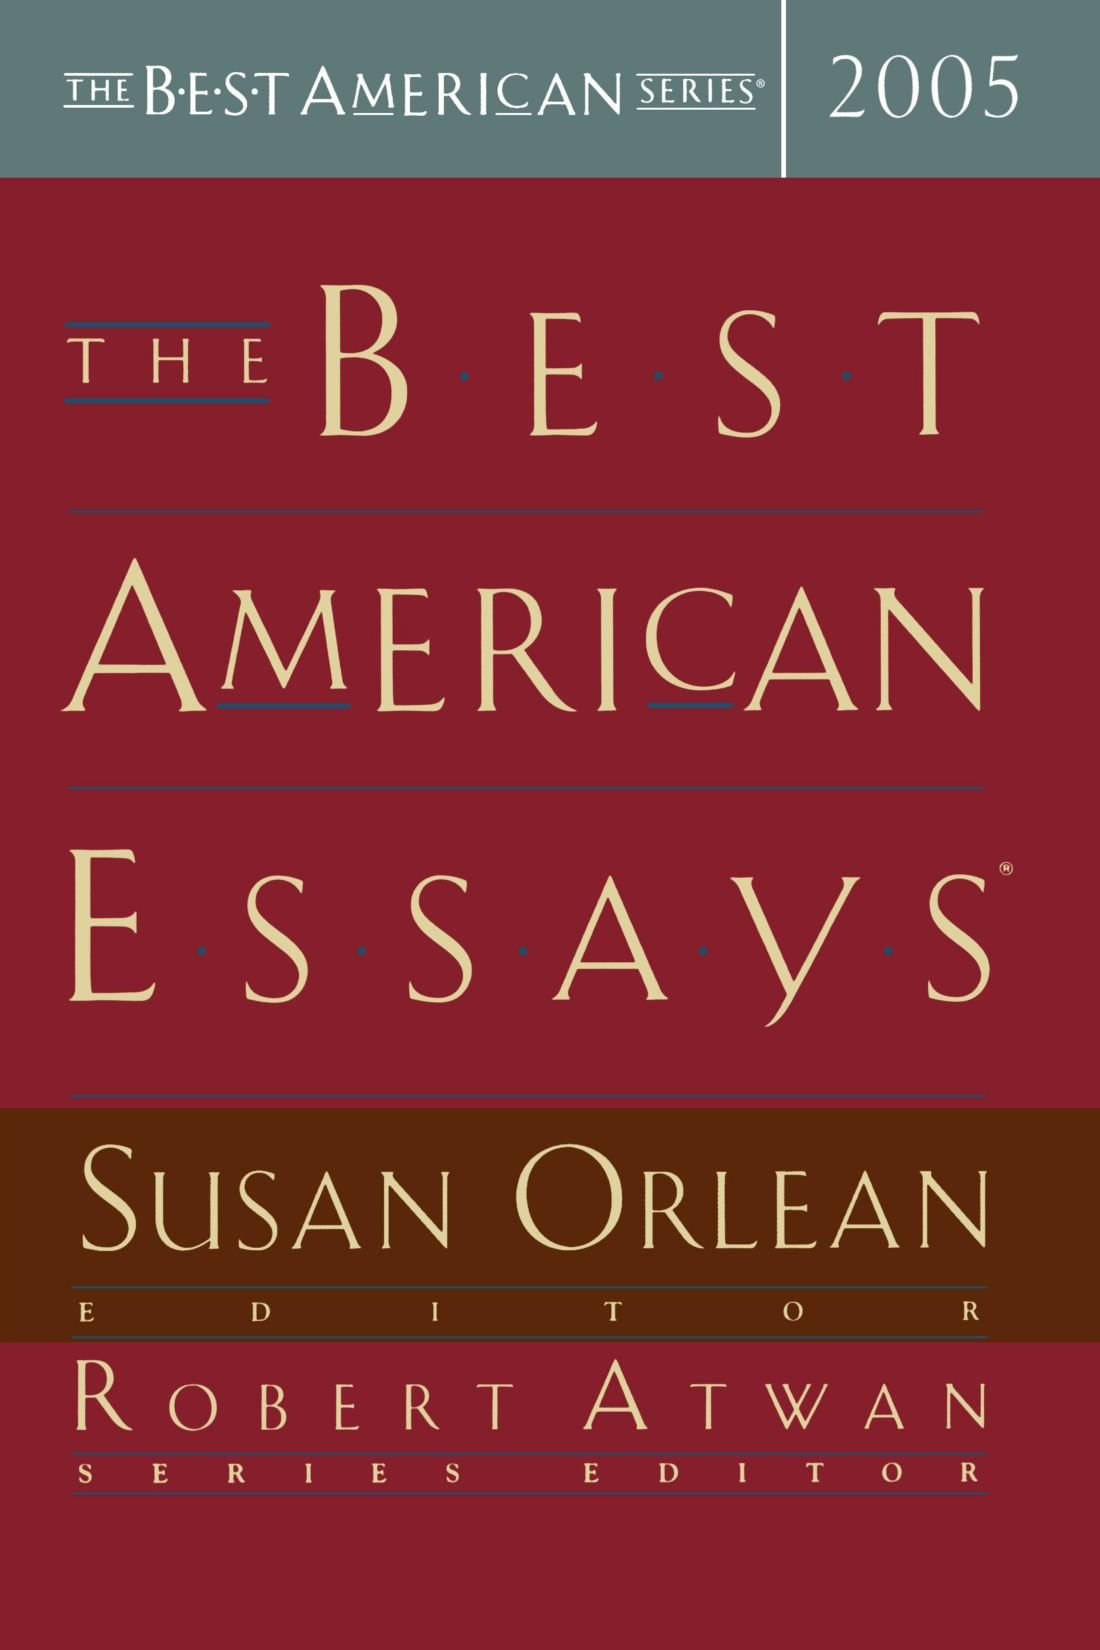 010 Essay Example Best American Essays Striking 2017 Pdf Submissions 2019 Of The Century Table Contents Full